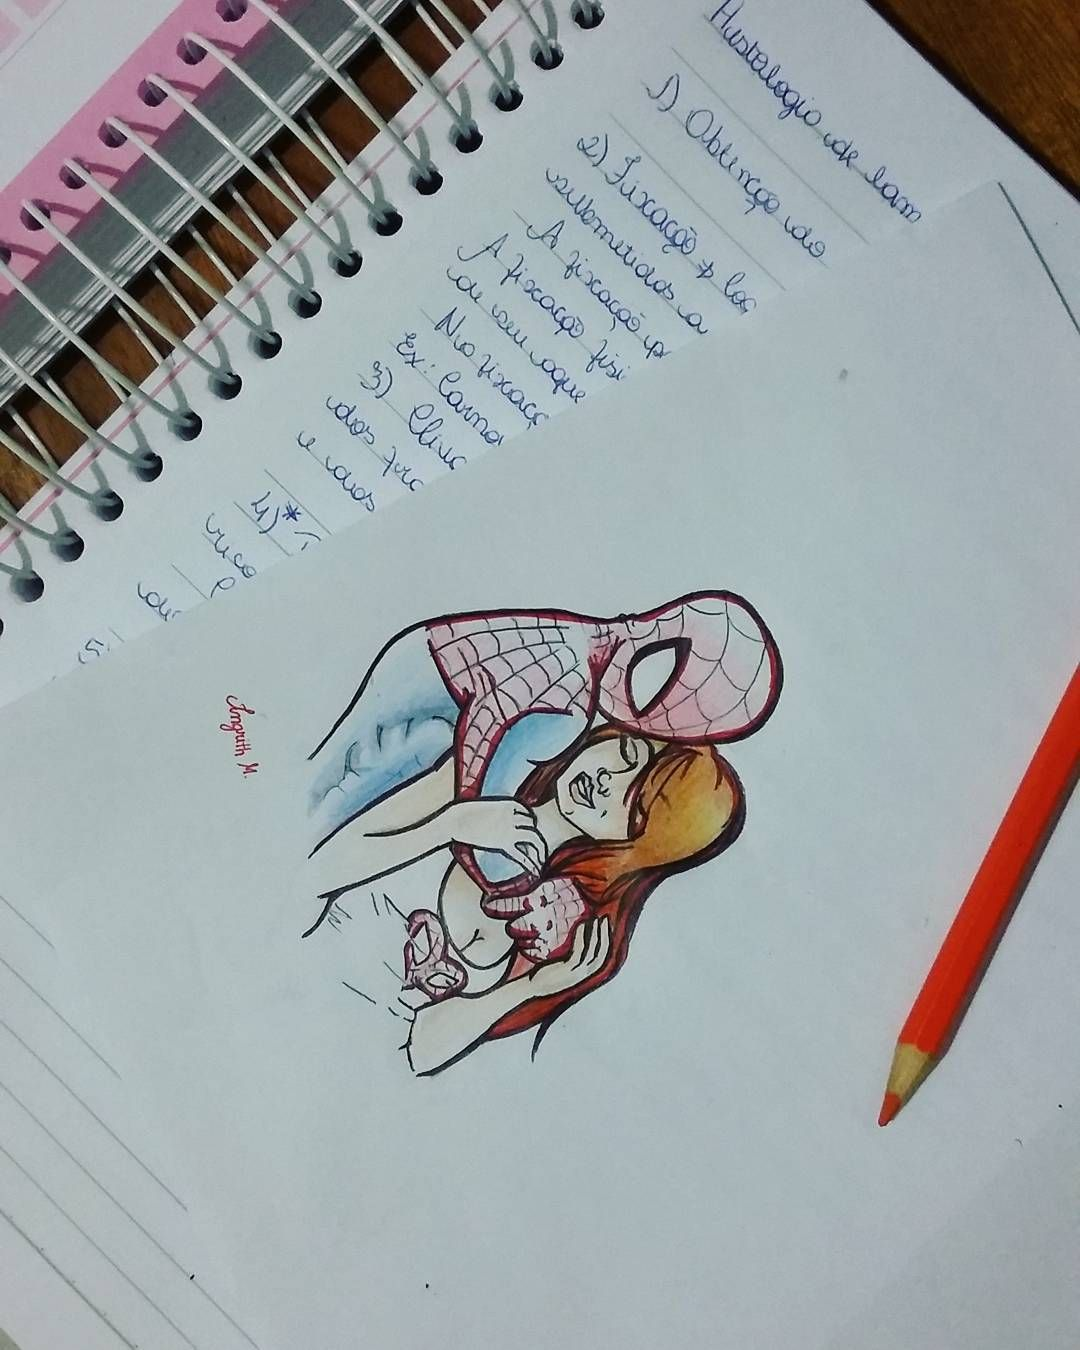 Ginger Desenho pertaining to estudando #spiderman #maryjanewatson #drawing #draw #histologia